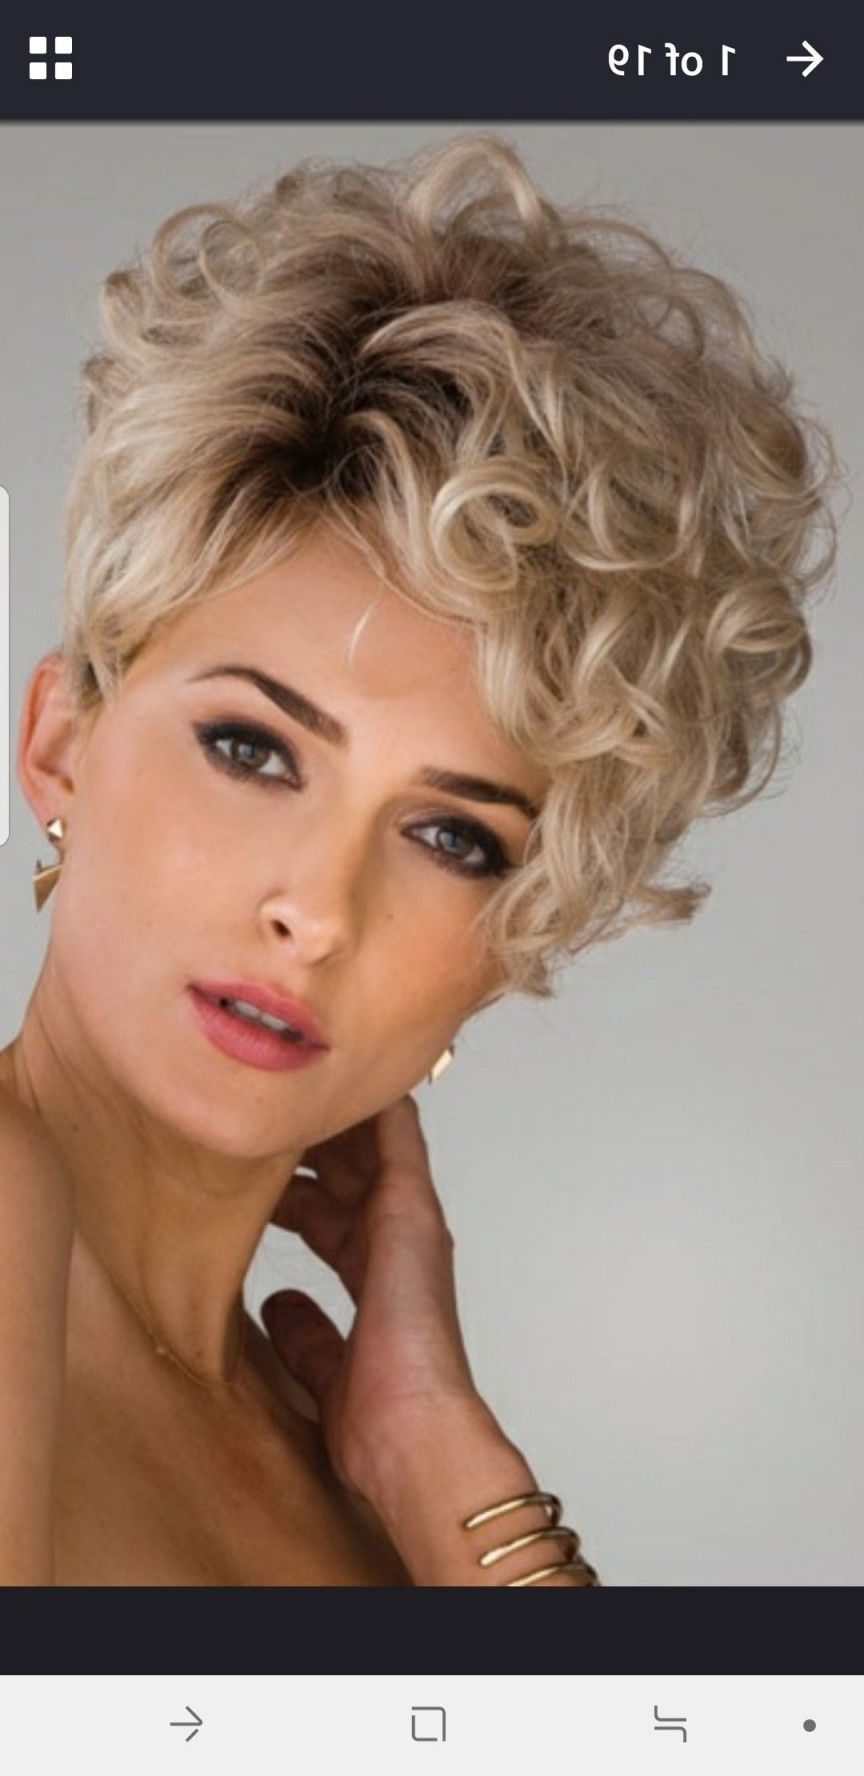 Fresh Frisuren Graue Haare Locken Hair Styles Short Curly Haircuts Short Hair Styles